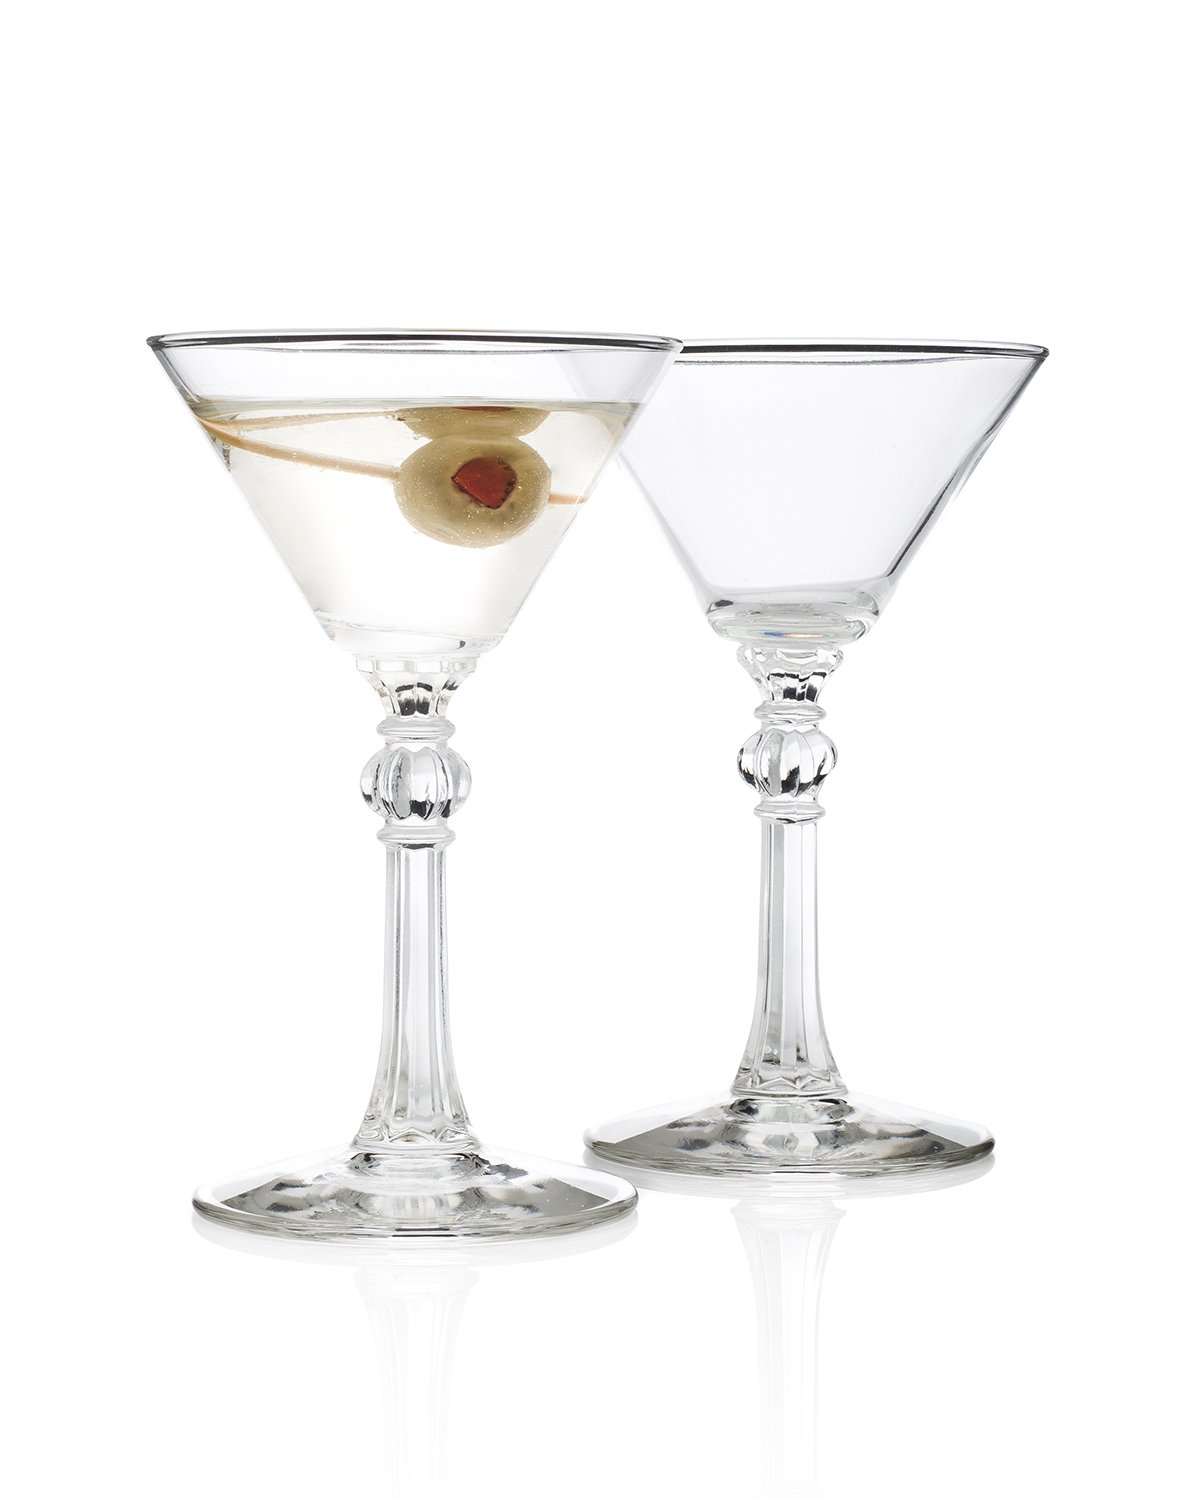 Charles Butterworth 1937 Martini Glass (Gift Box Set of 2)